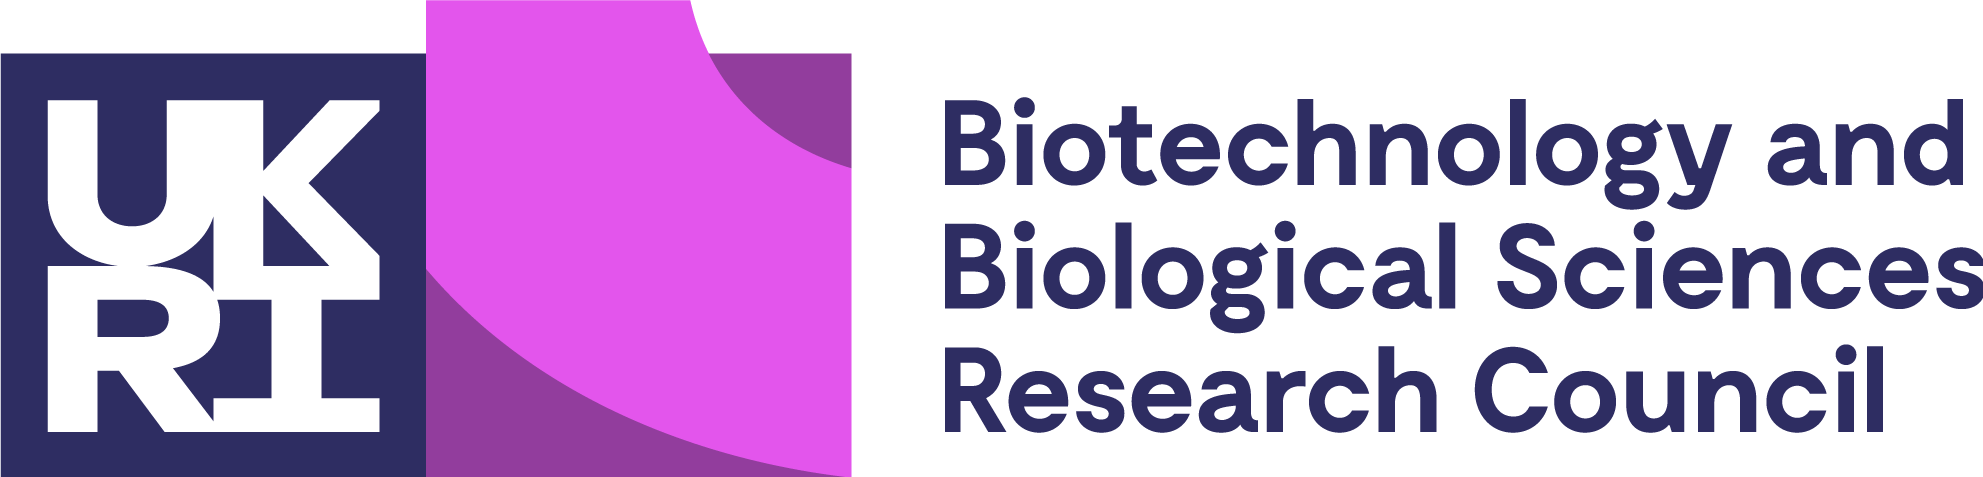 UKRI and Biotechnology and Biological Sciences Research Council logo